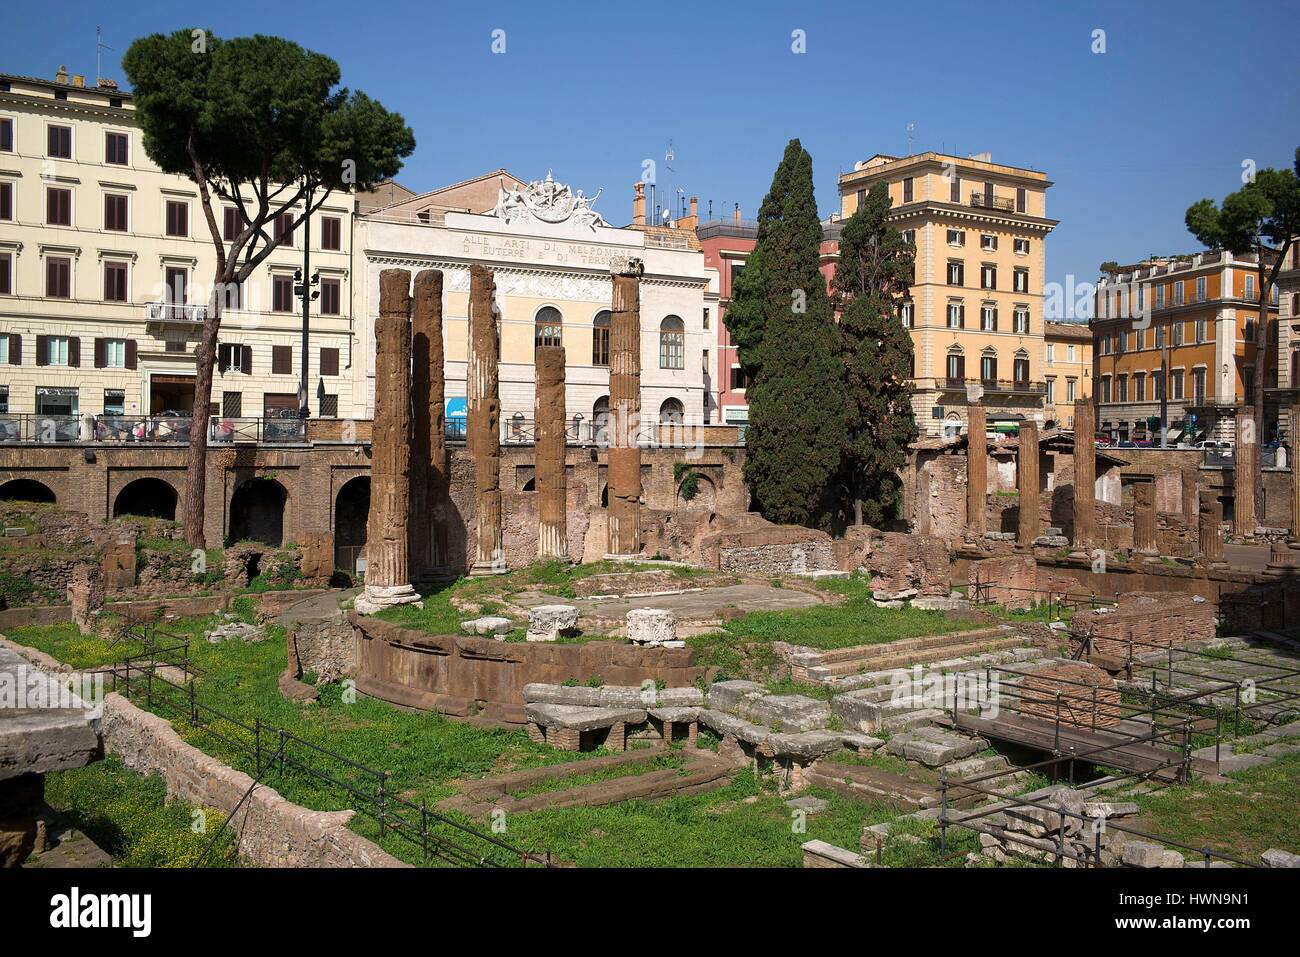 Italy, Lazio, Rome, historical centre listed as World Heritage by UNESCO, ruins, Area Sacra di Largo Argentina - Stock Image